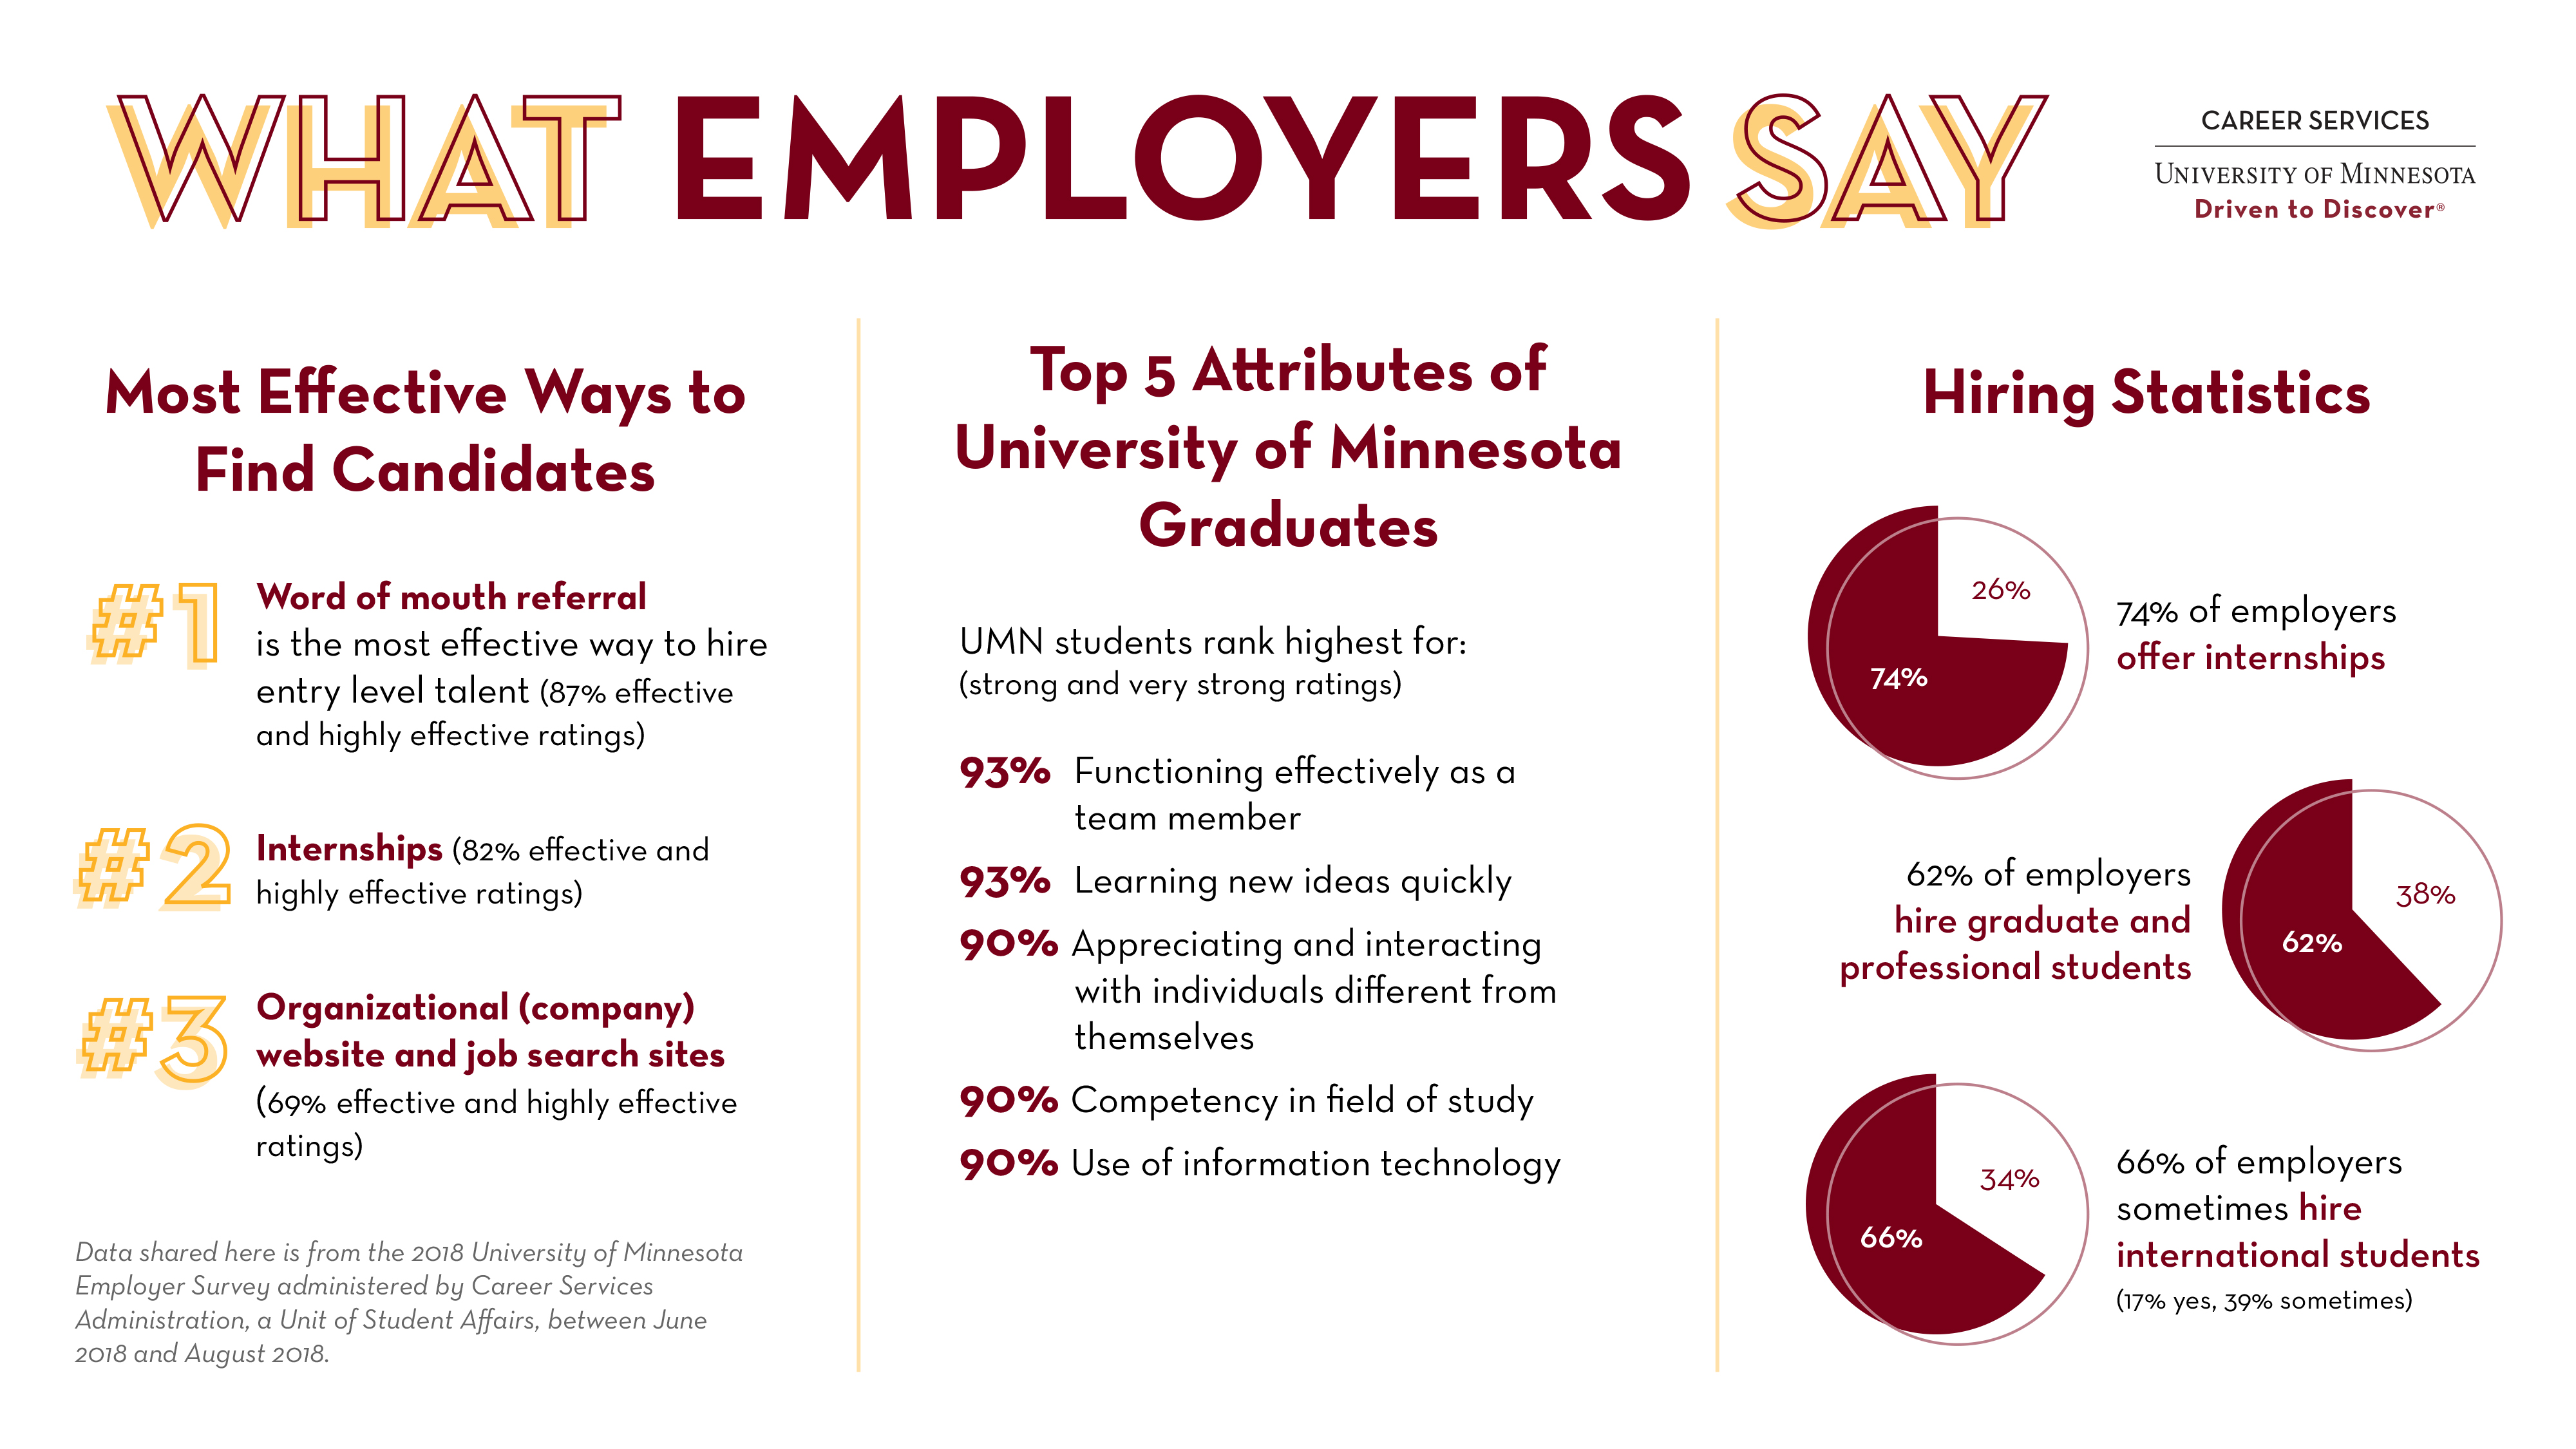 Data compiled from the 2018 University of Minnesota Employer Survey administered by Career Services Administration, a Unit of Student Affairs, between June 2018 and August 2018.